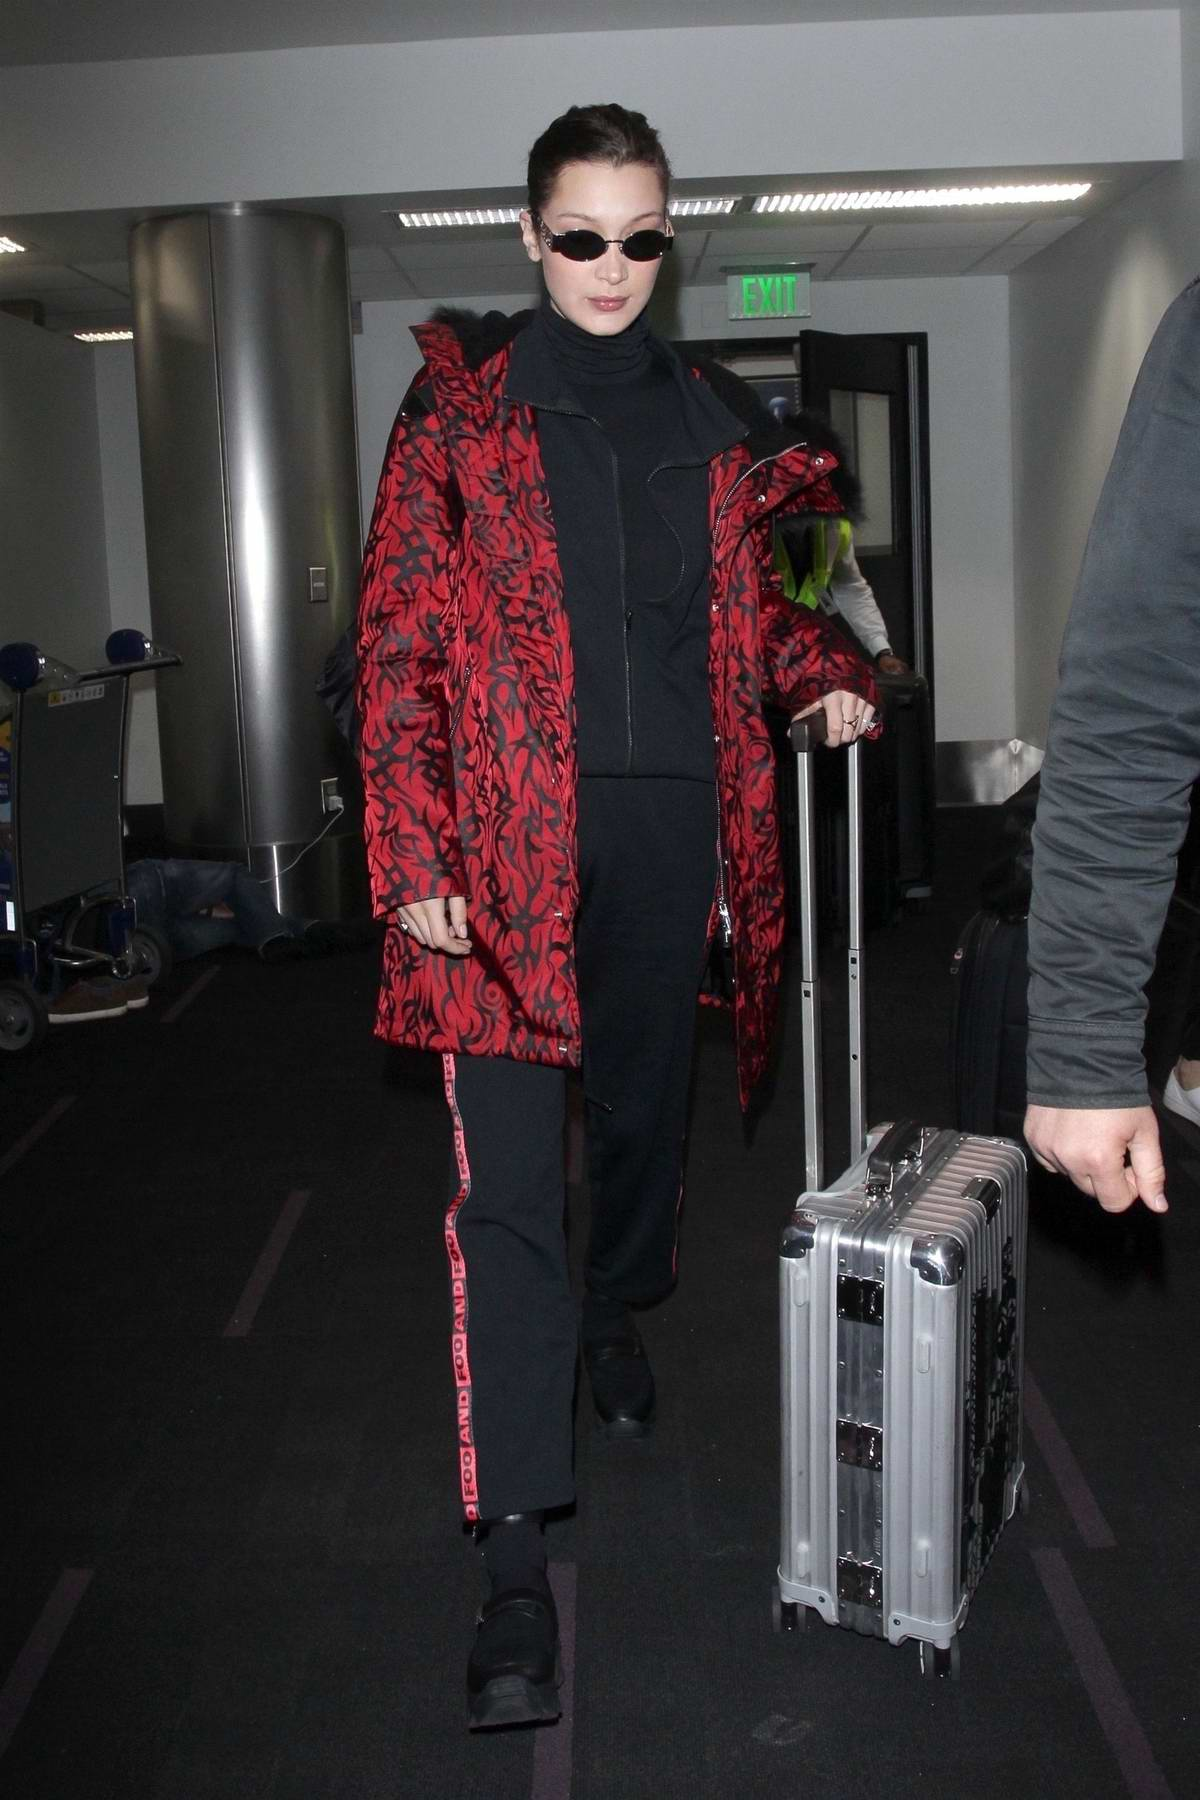 Bella Hadid wears a red and black patterned jacket as she lands at LAX airport, Los Angeles